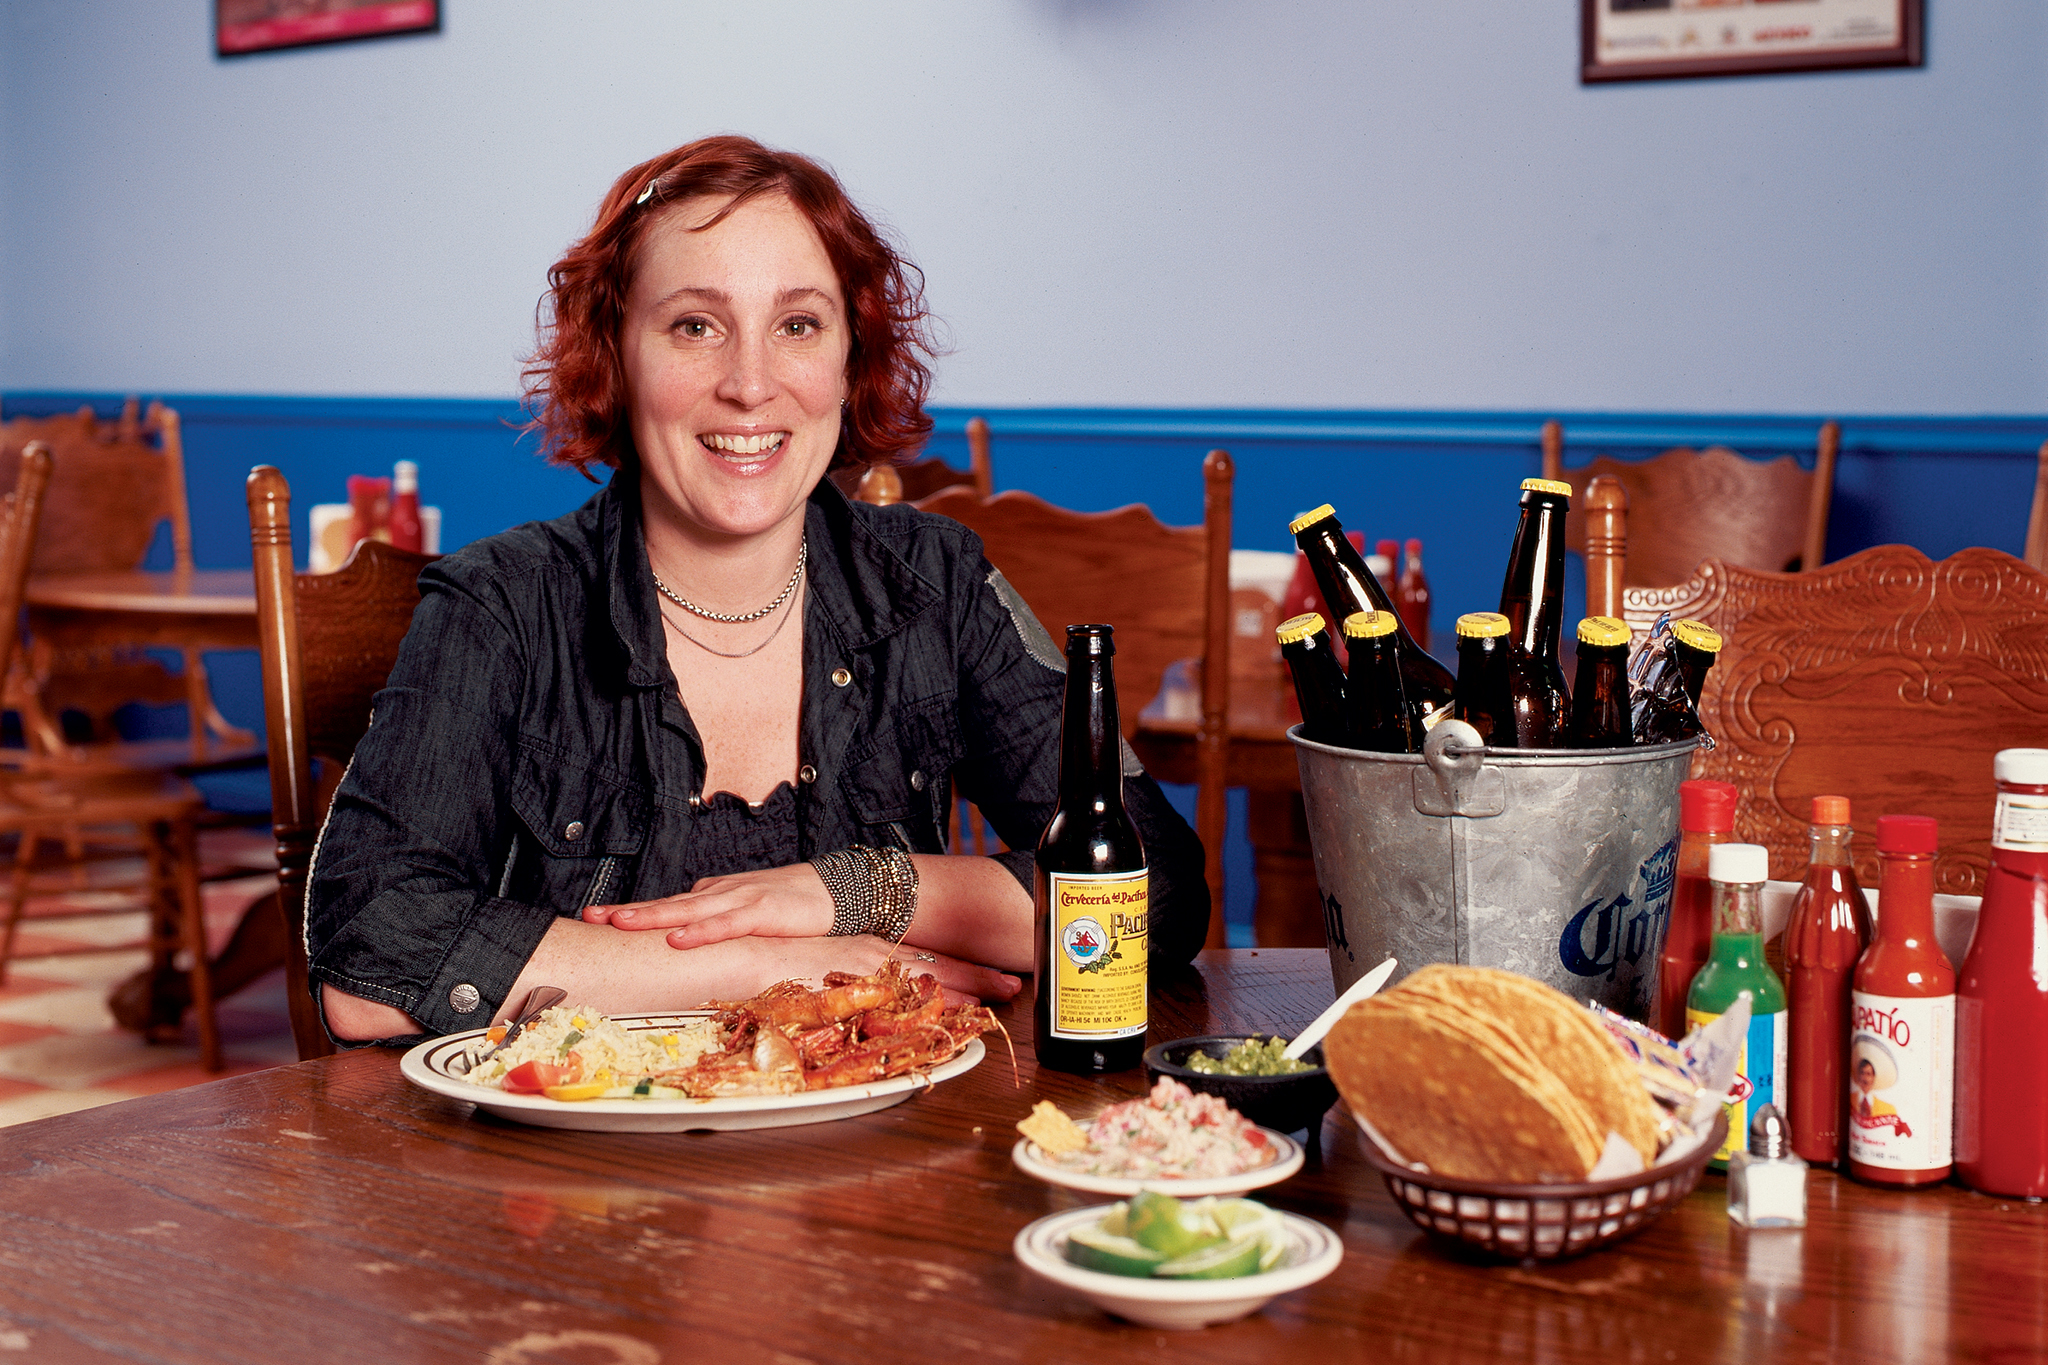 Mindy Segal at Las Islas Marias for our cheap eats issue June 17, 2005